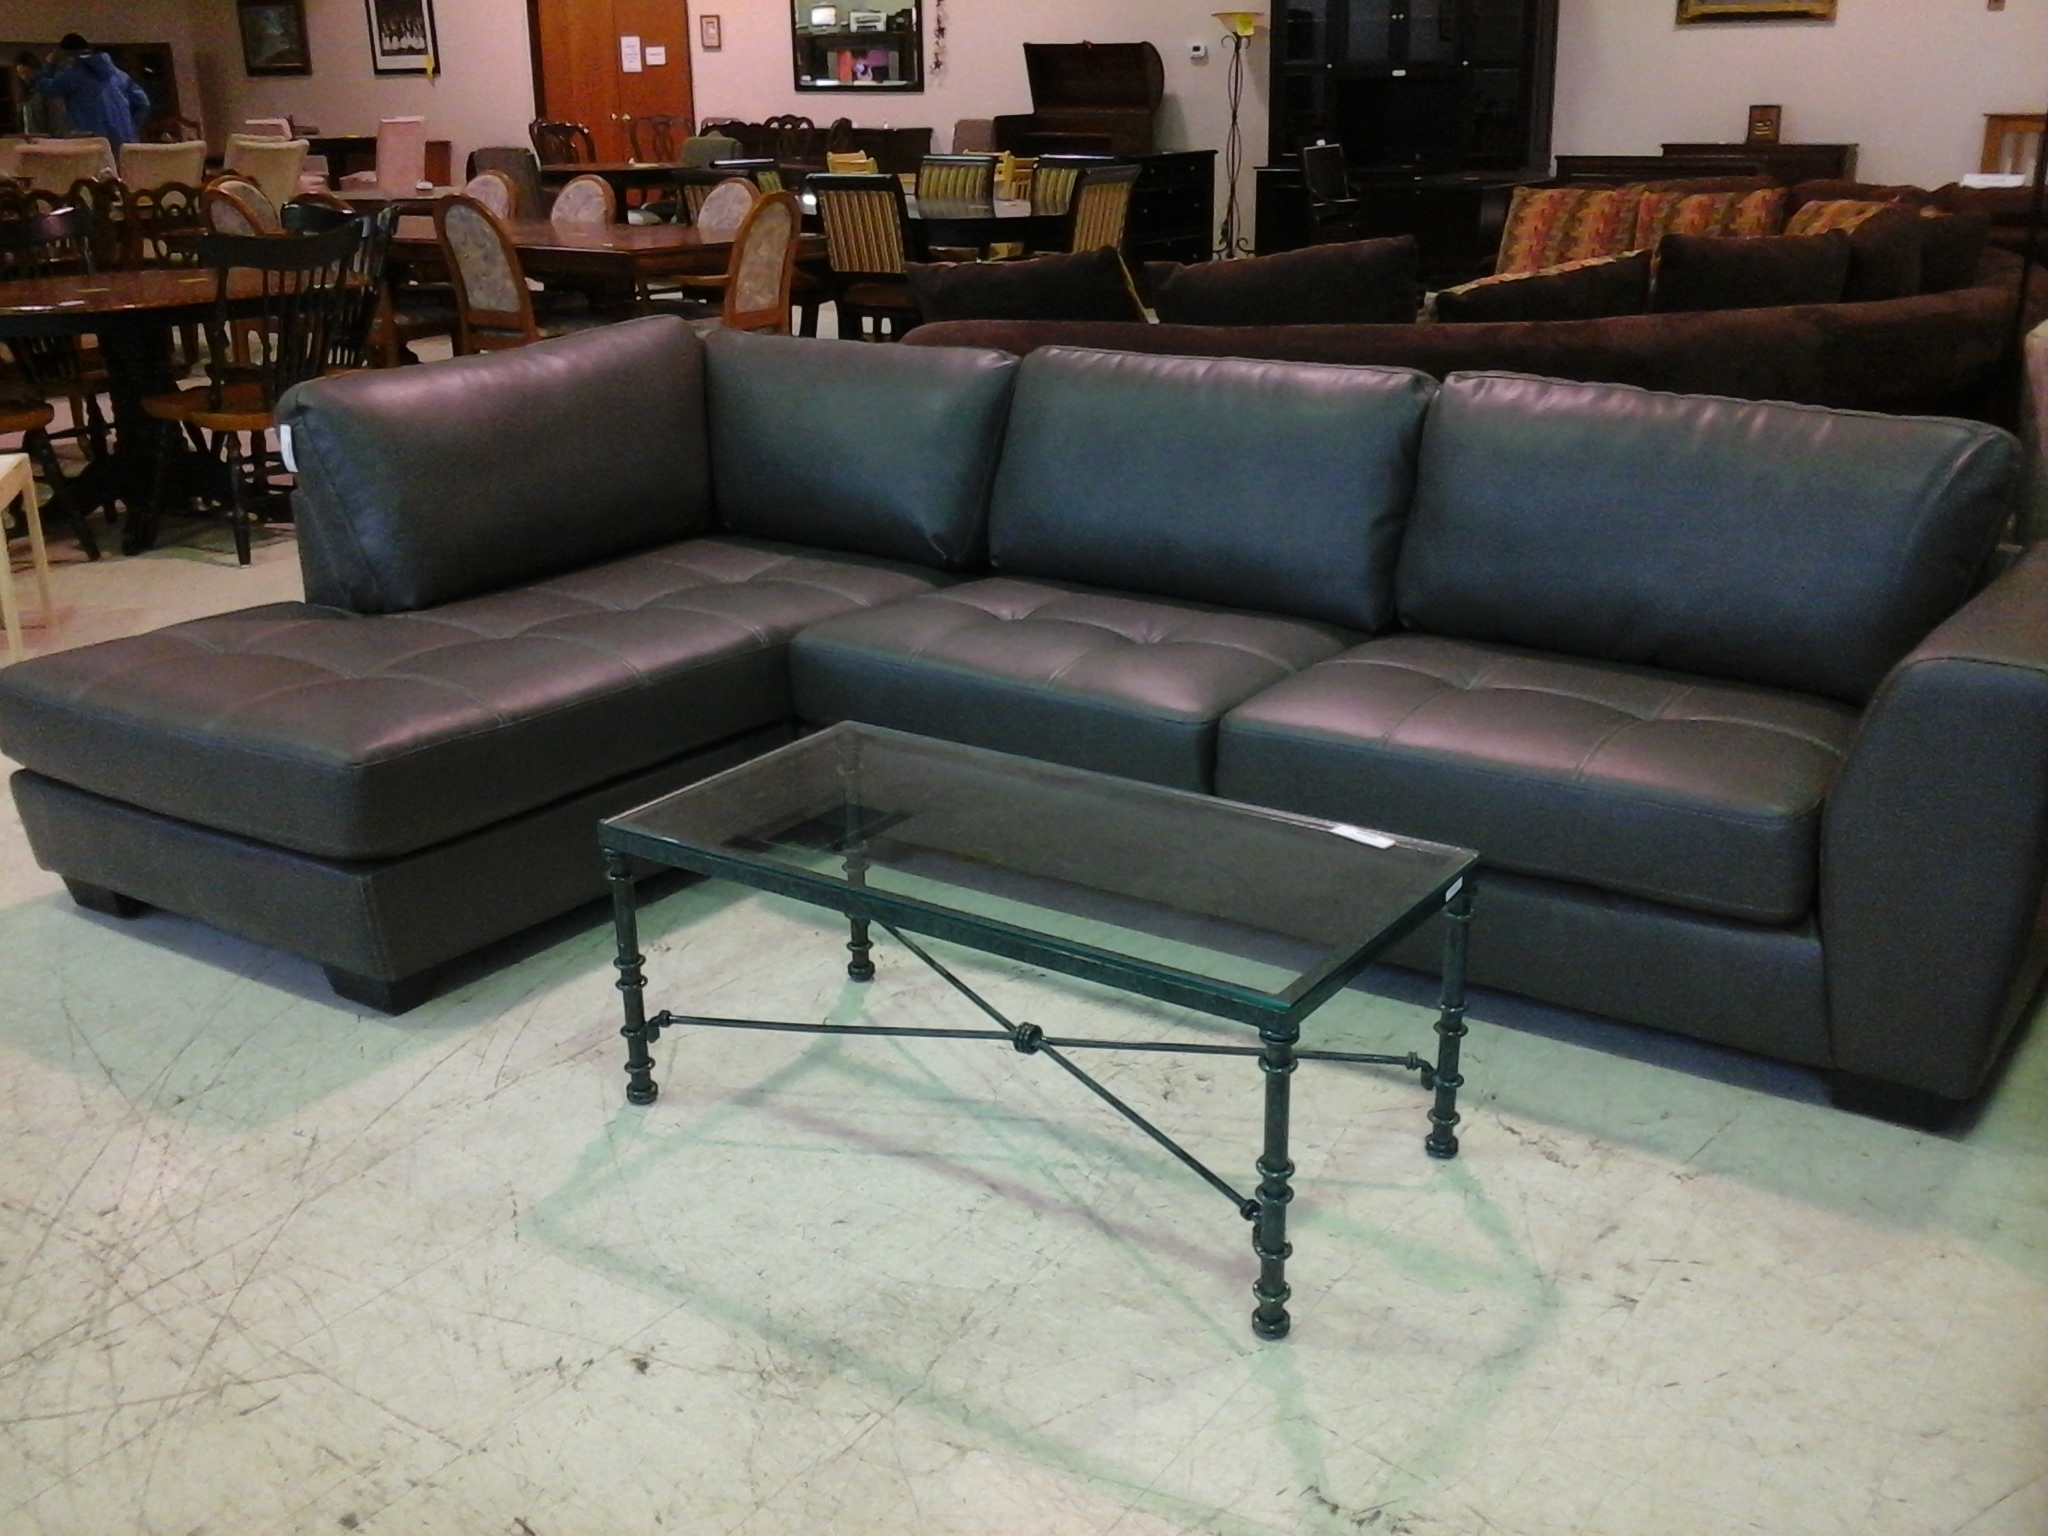 Sectional Sofas San Francisco – Fjellkjeden Pertaining To Most Up To Date San Francisco Sectional Sofas (View 5 of 20)